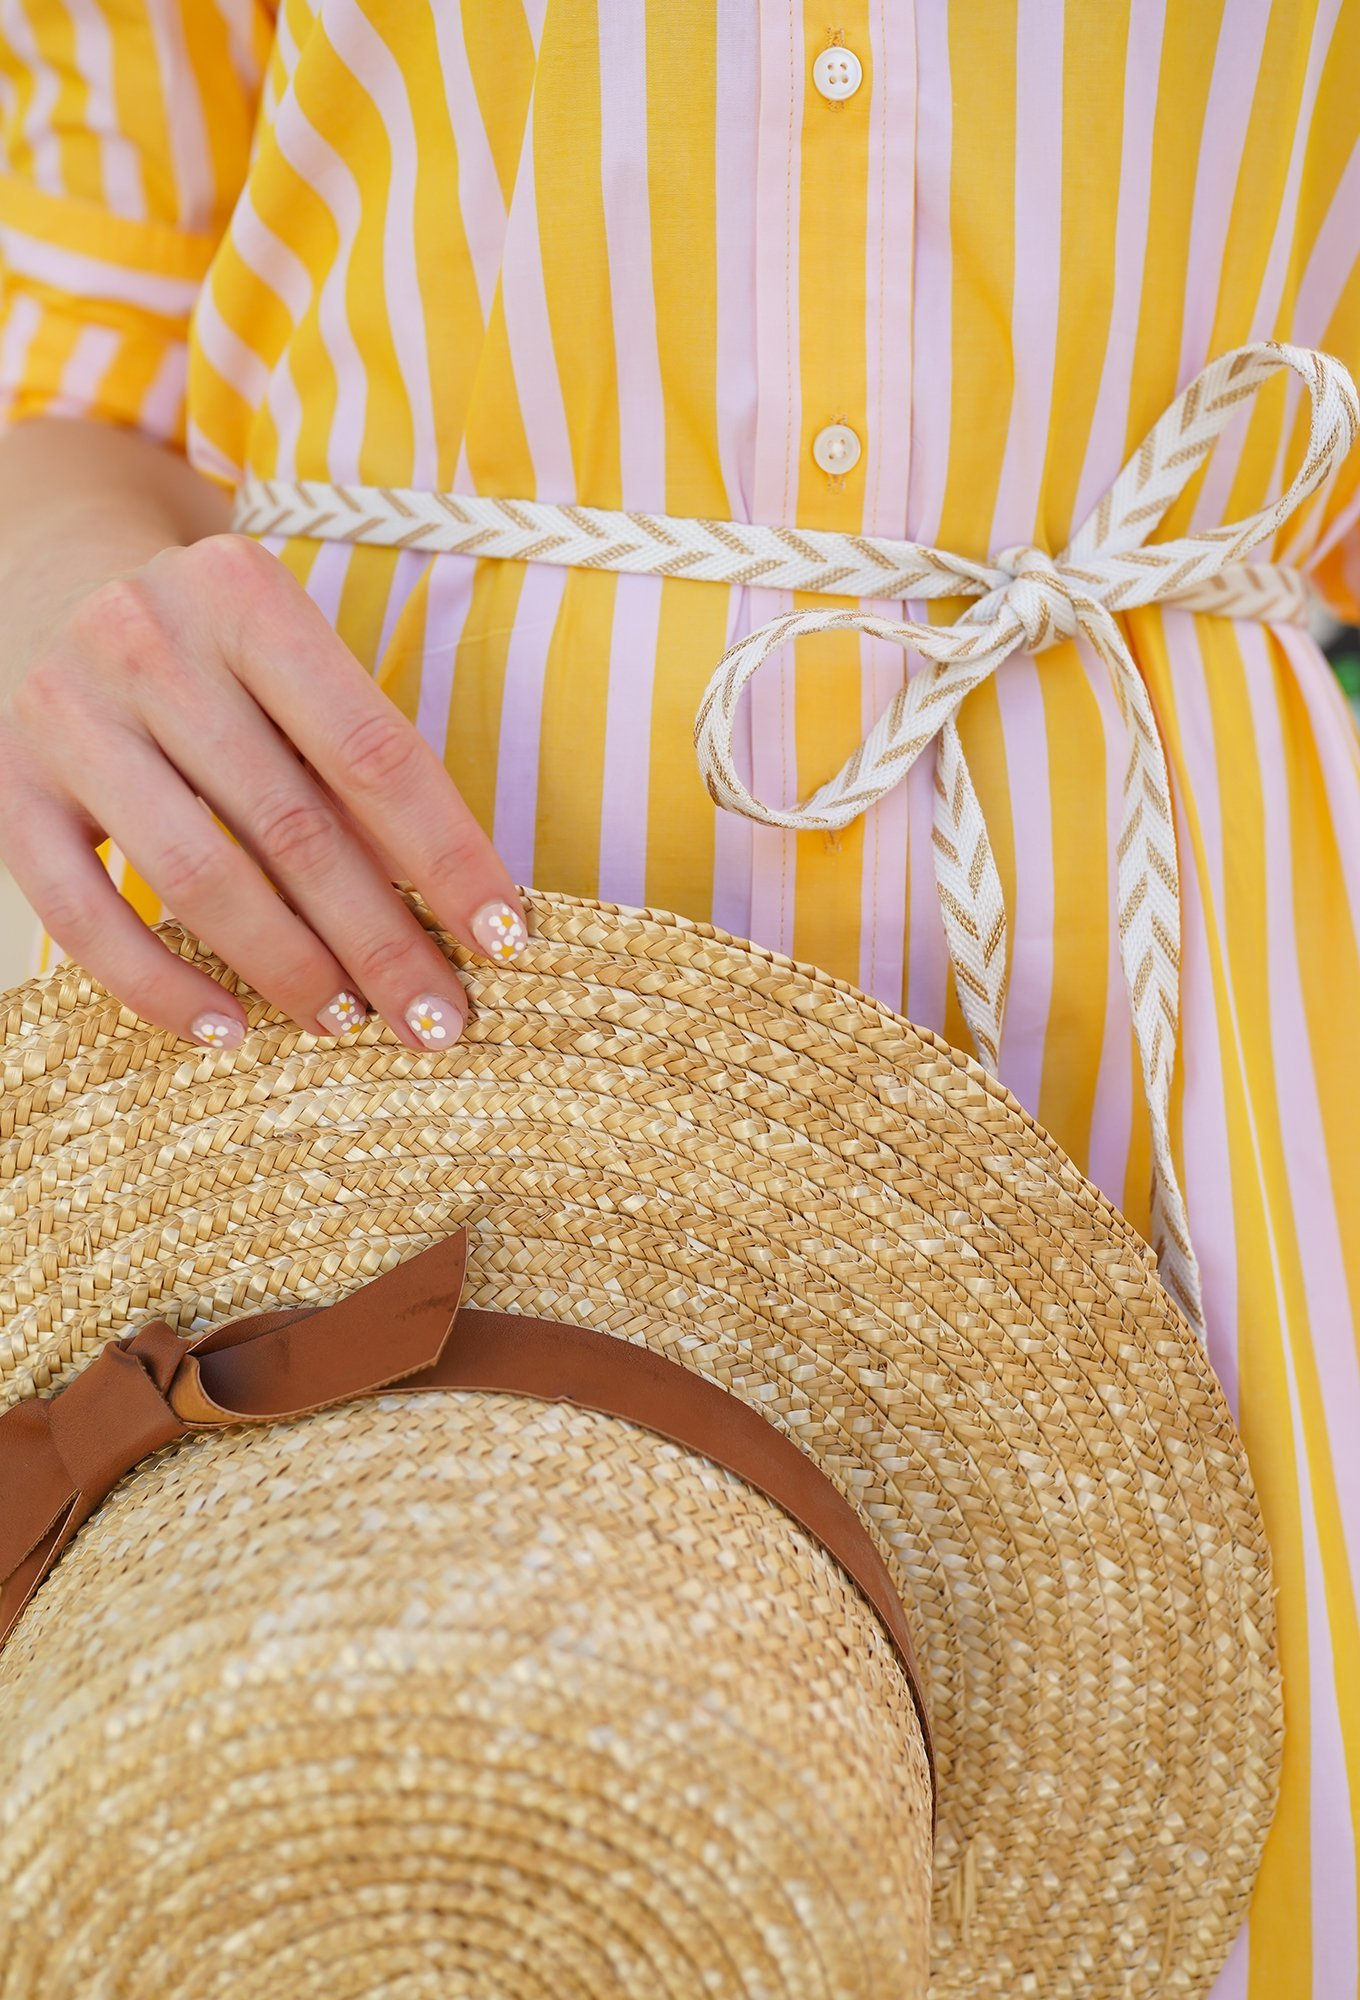 Ashley Brooke in yellow striped dress and straw hat